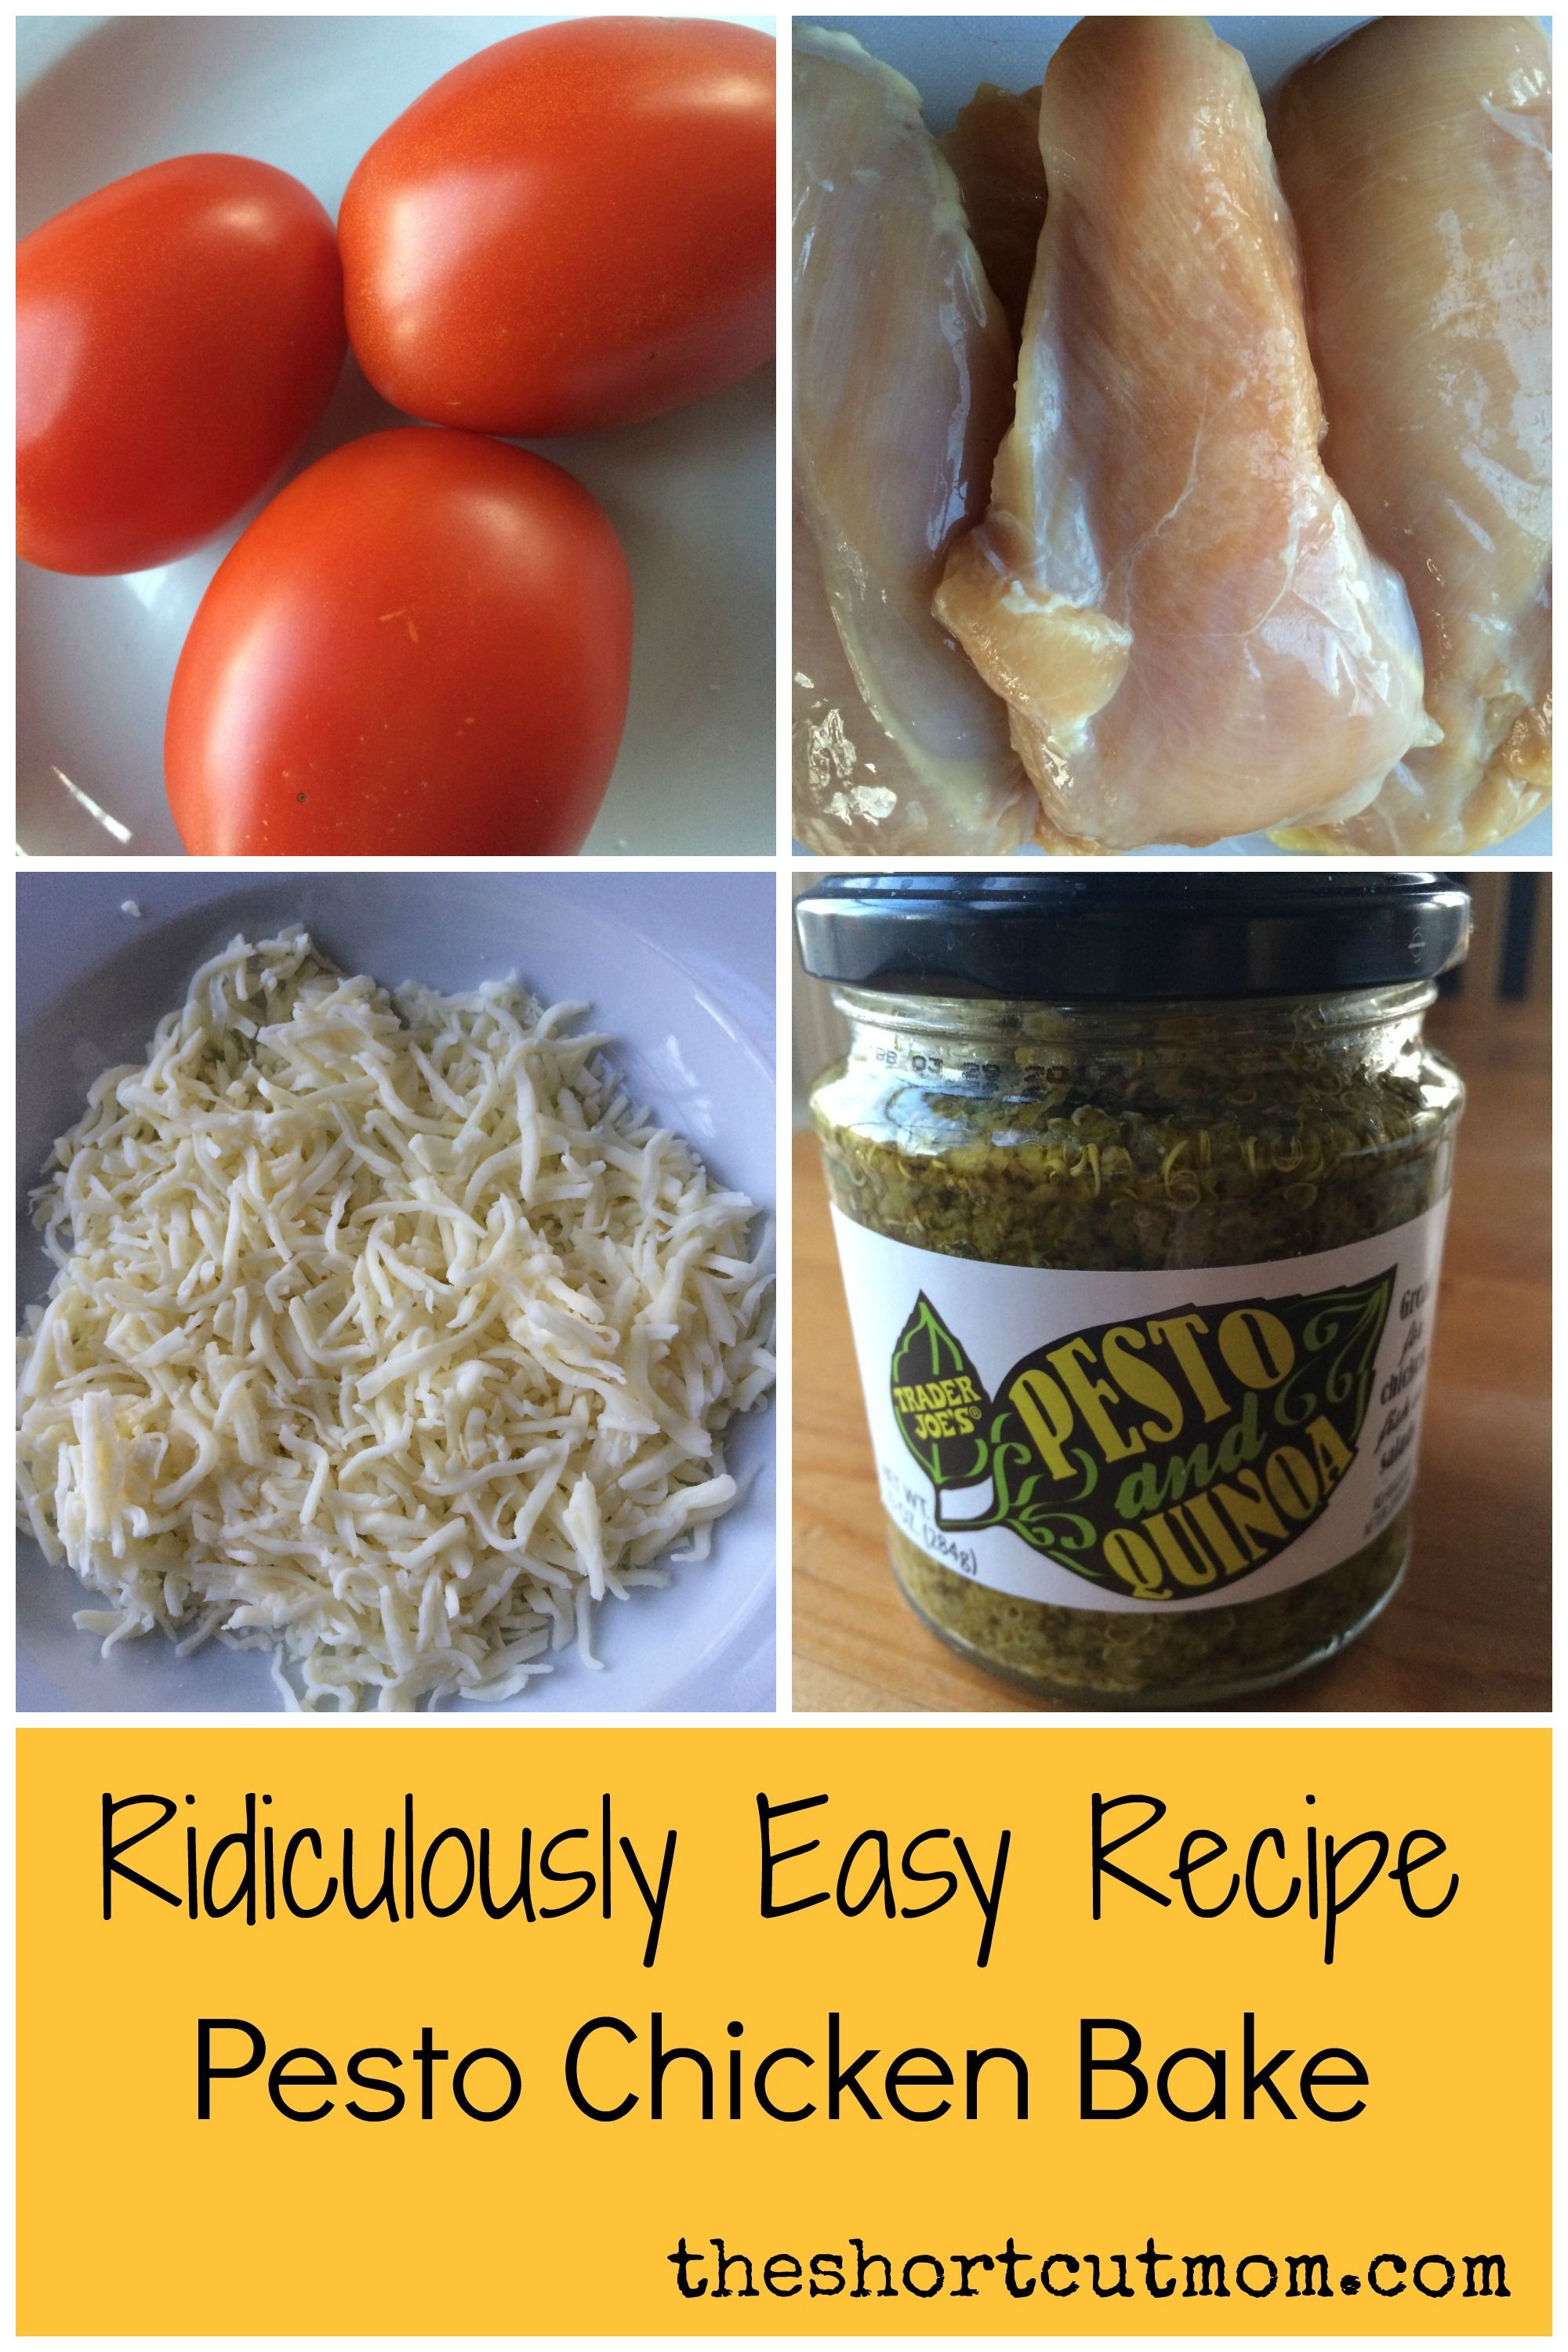 How To Make An Easy Chicken Pesto Dish With Only Four Ingredients!